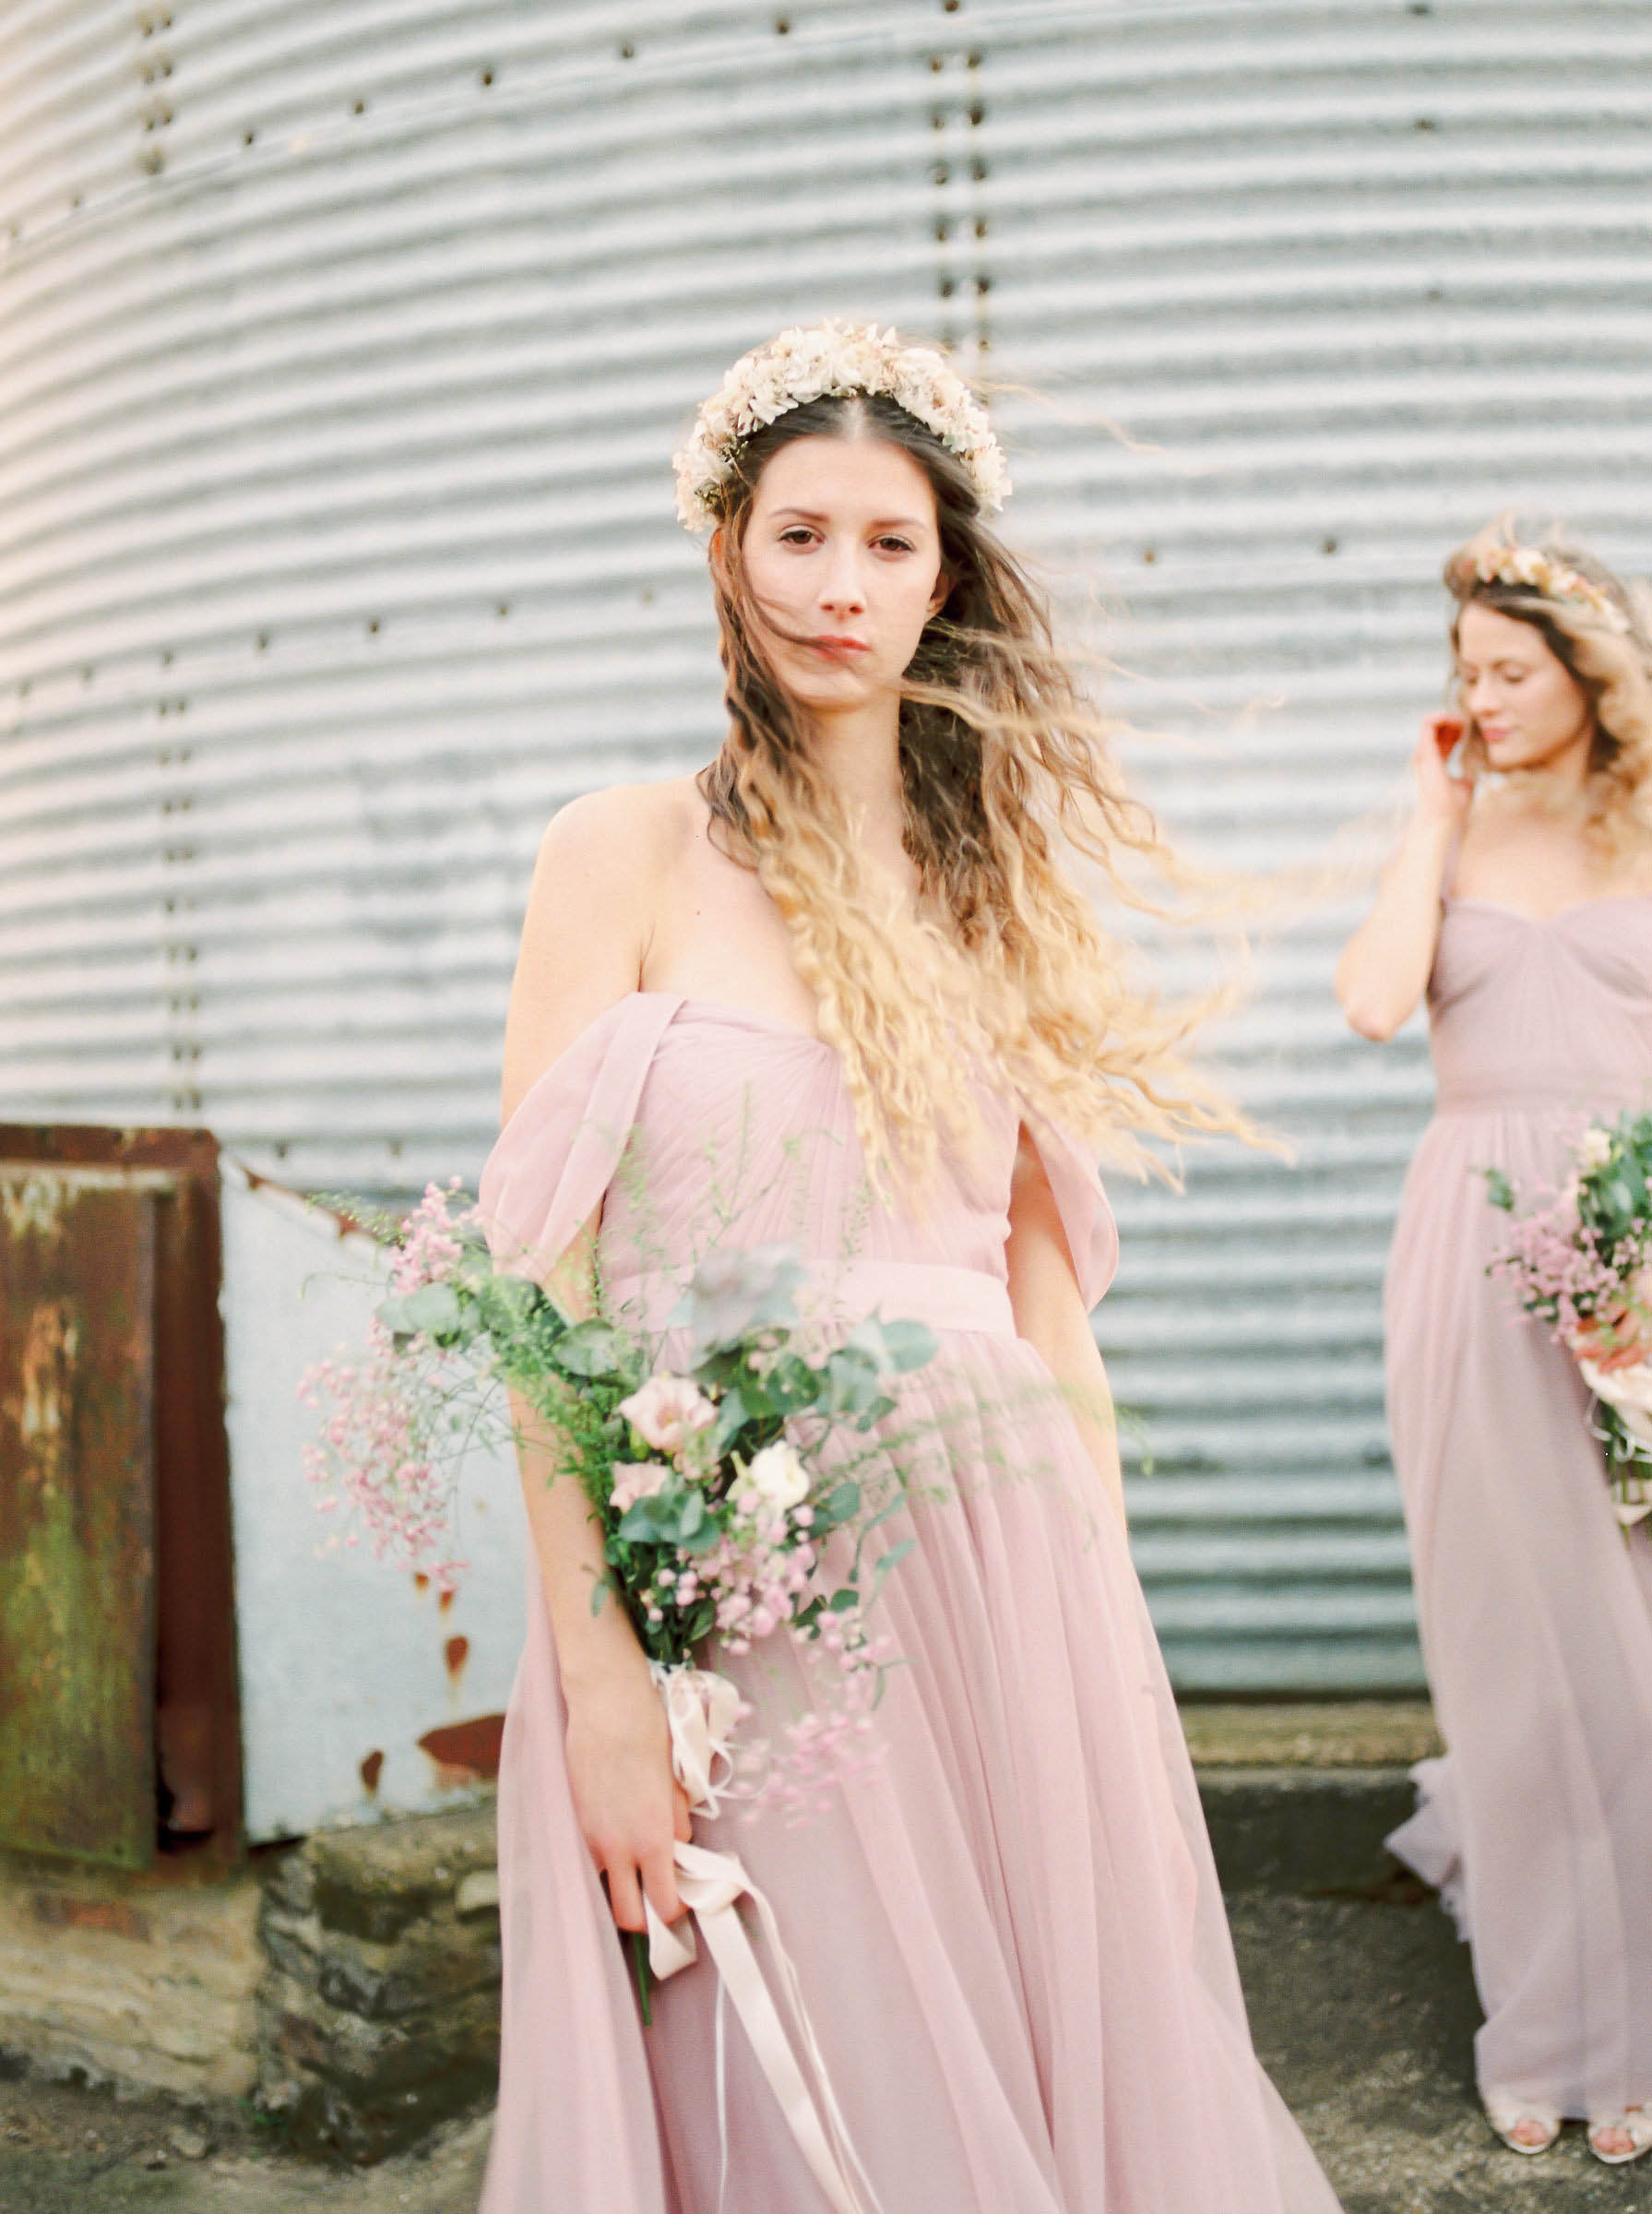 Amy O'Boyle Photography- Destination & UK Fine Art Film Wedding Photographer- TH&TH Bridesmaid Dress Shoot-20.jpg